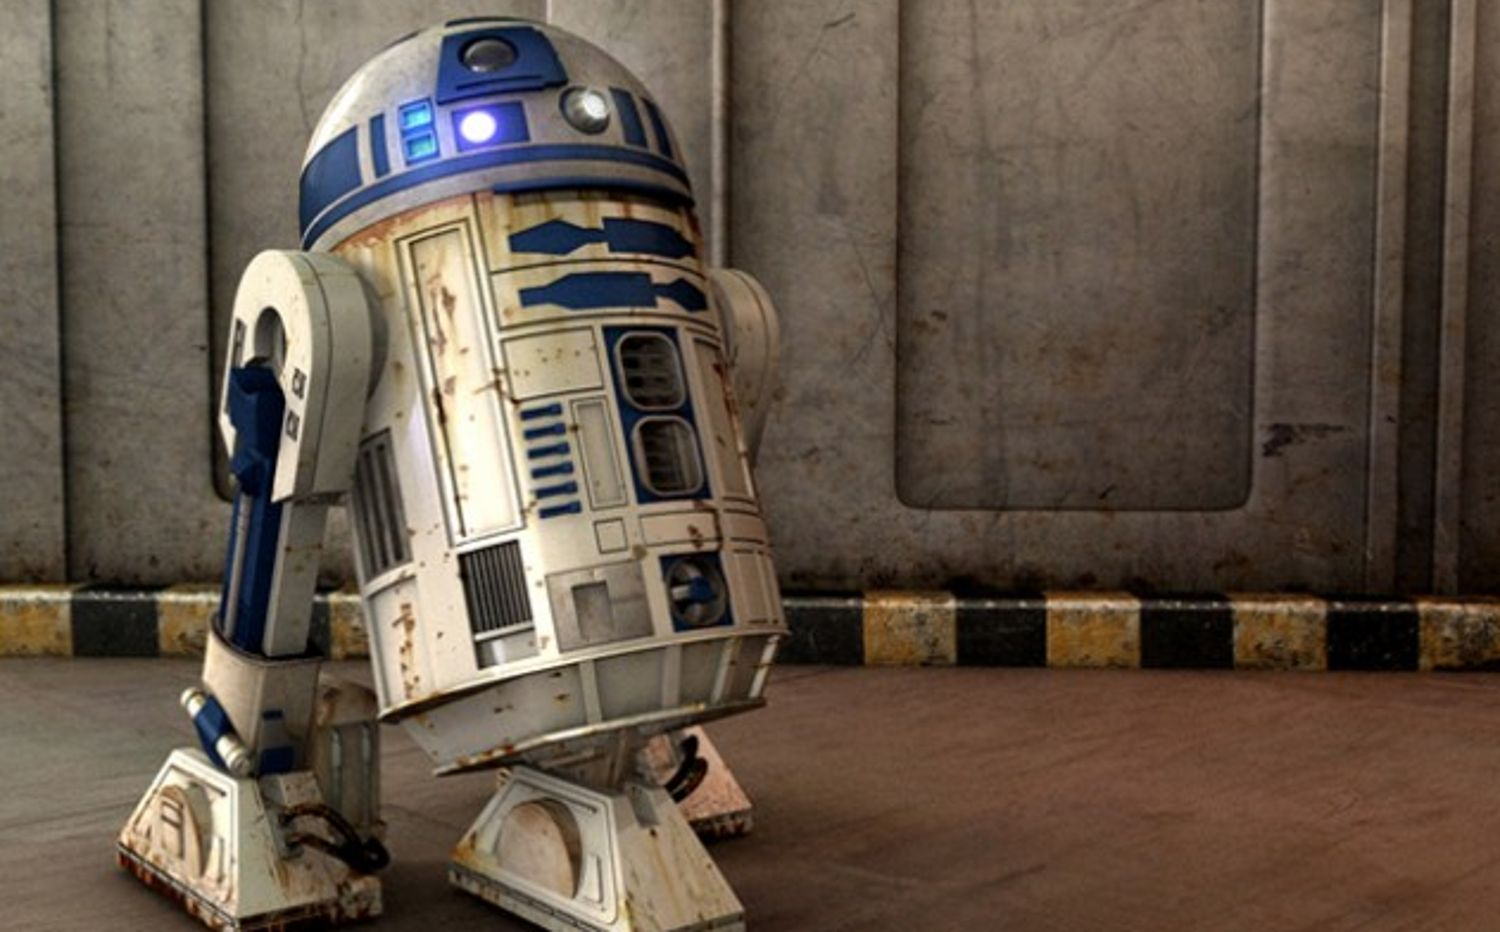 jj-abrams-explains-r2-d2s-role-at-the-end-of-star-wars-the-force-awakens